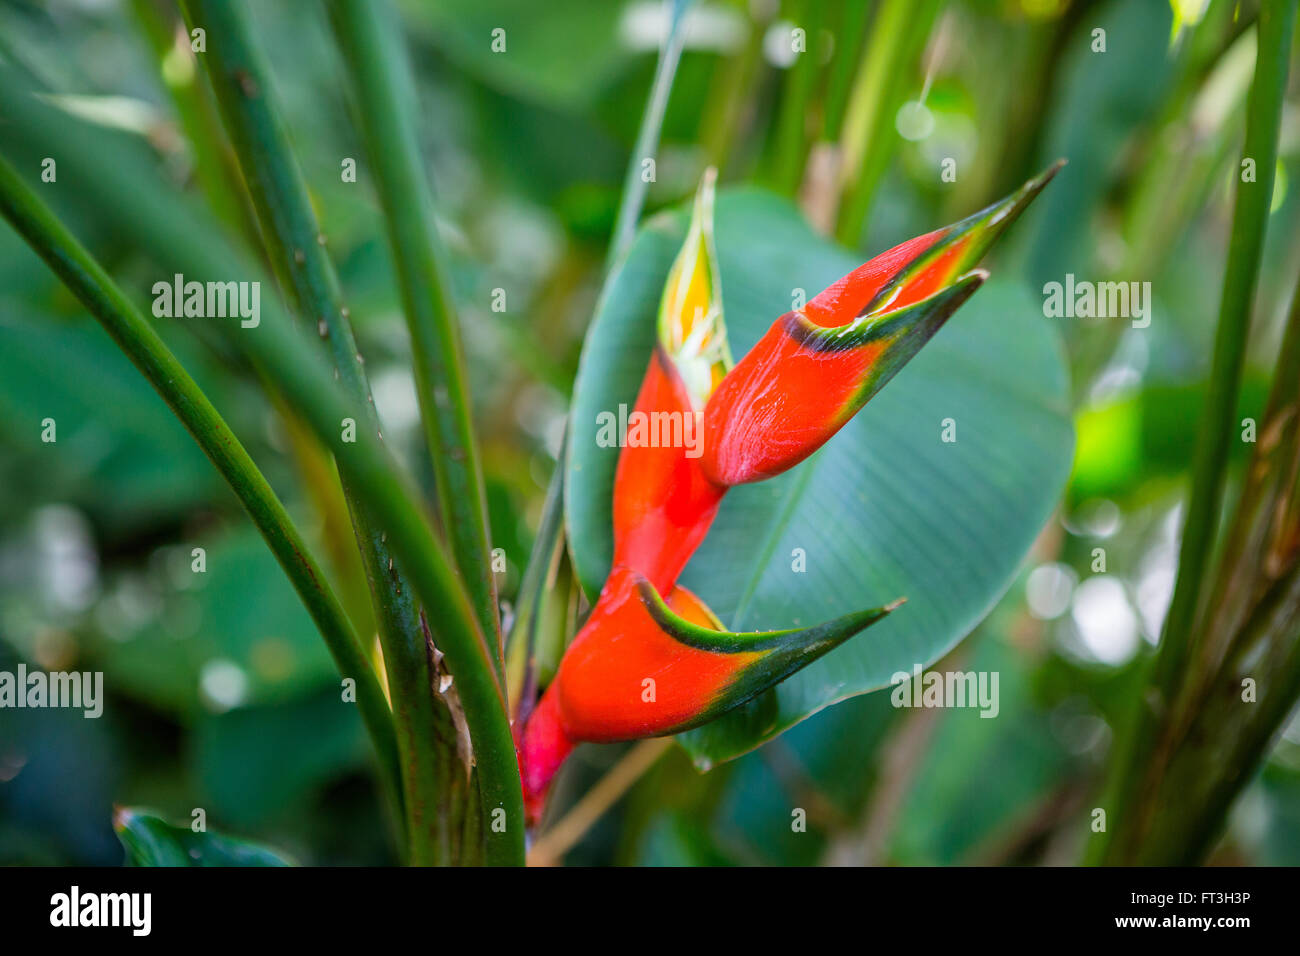 Heliconia Lobster Claw Plant in the shade - Stock Image